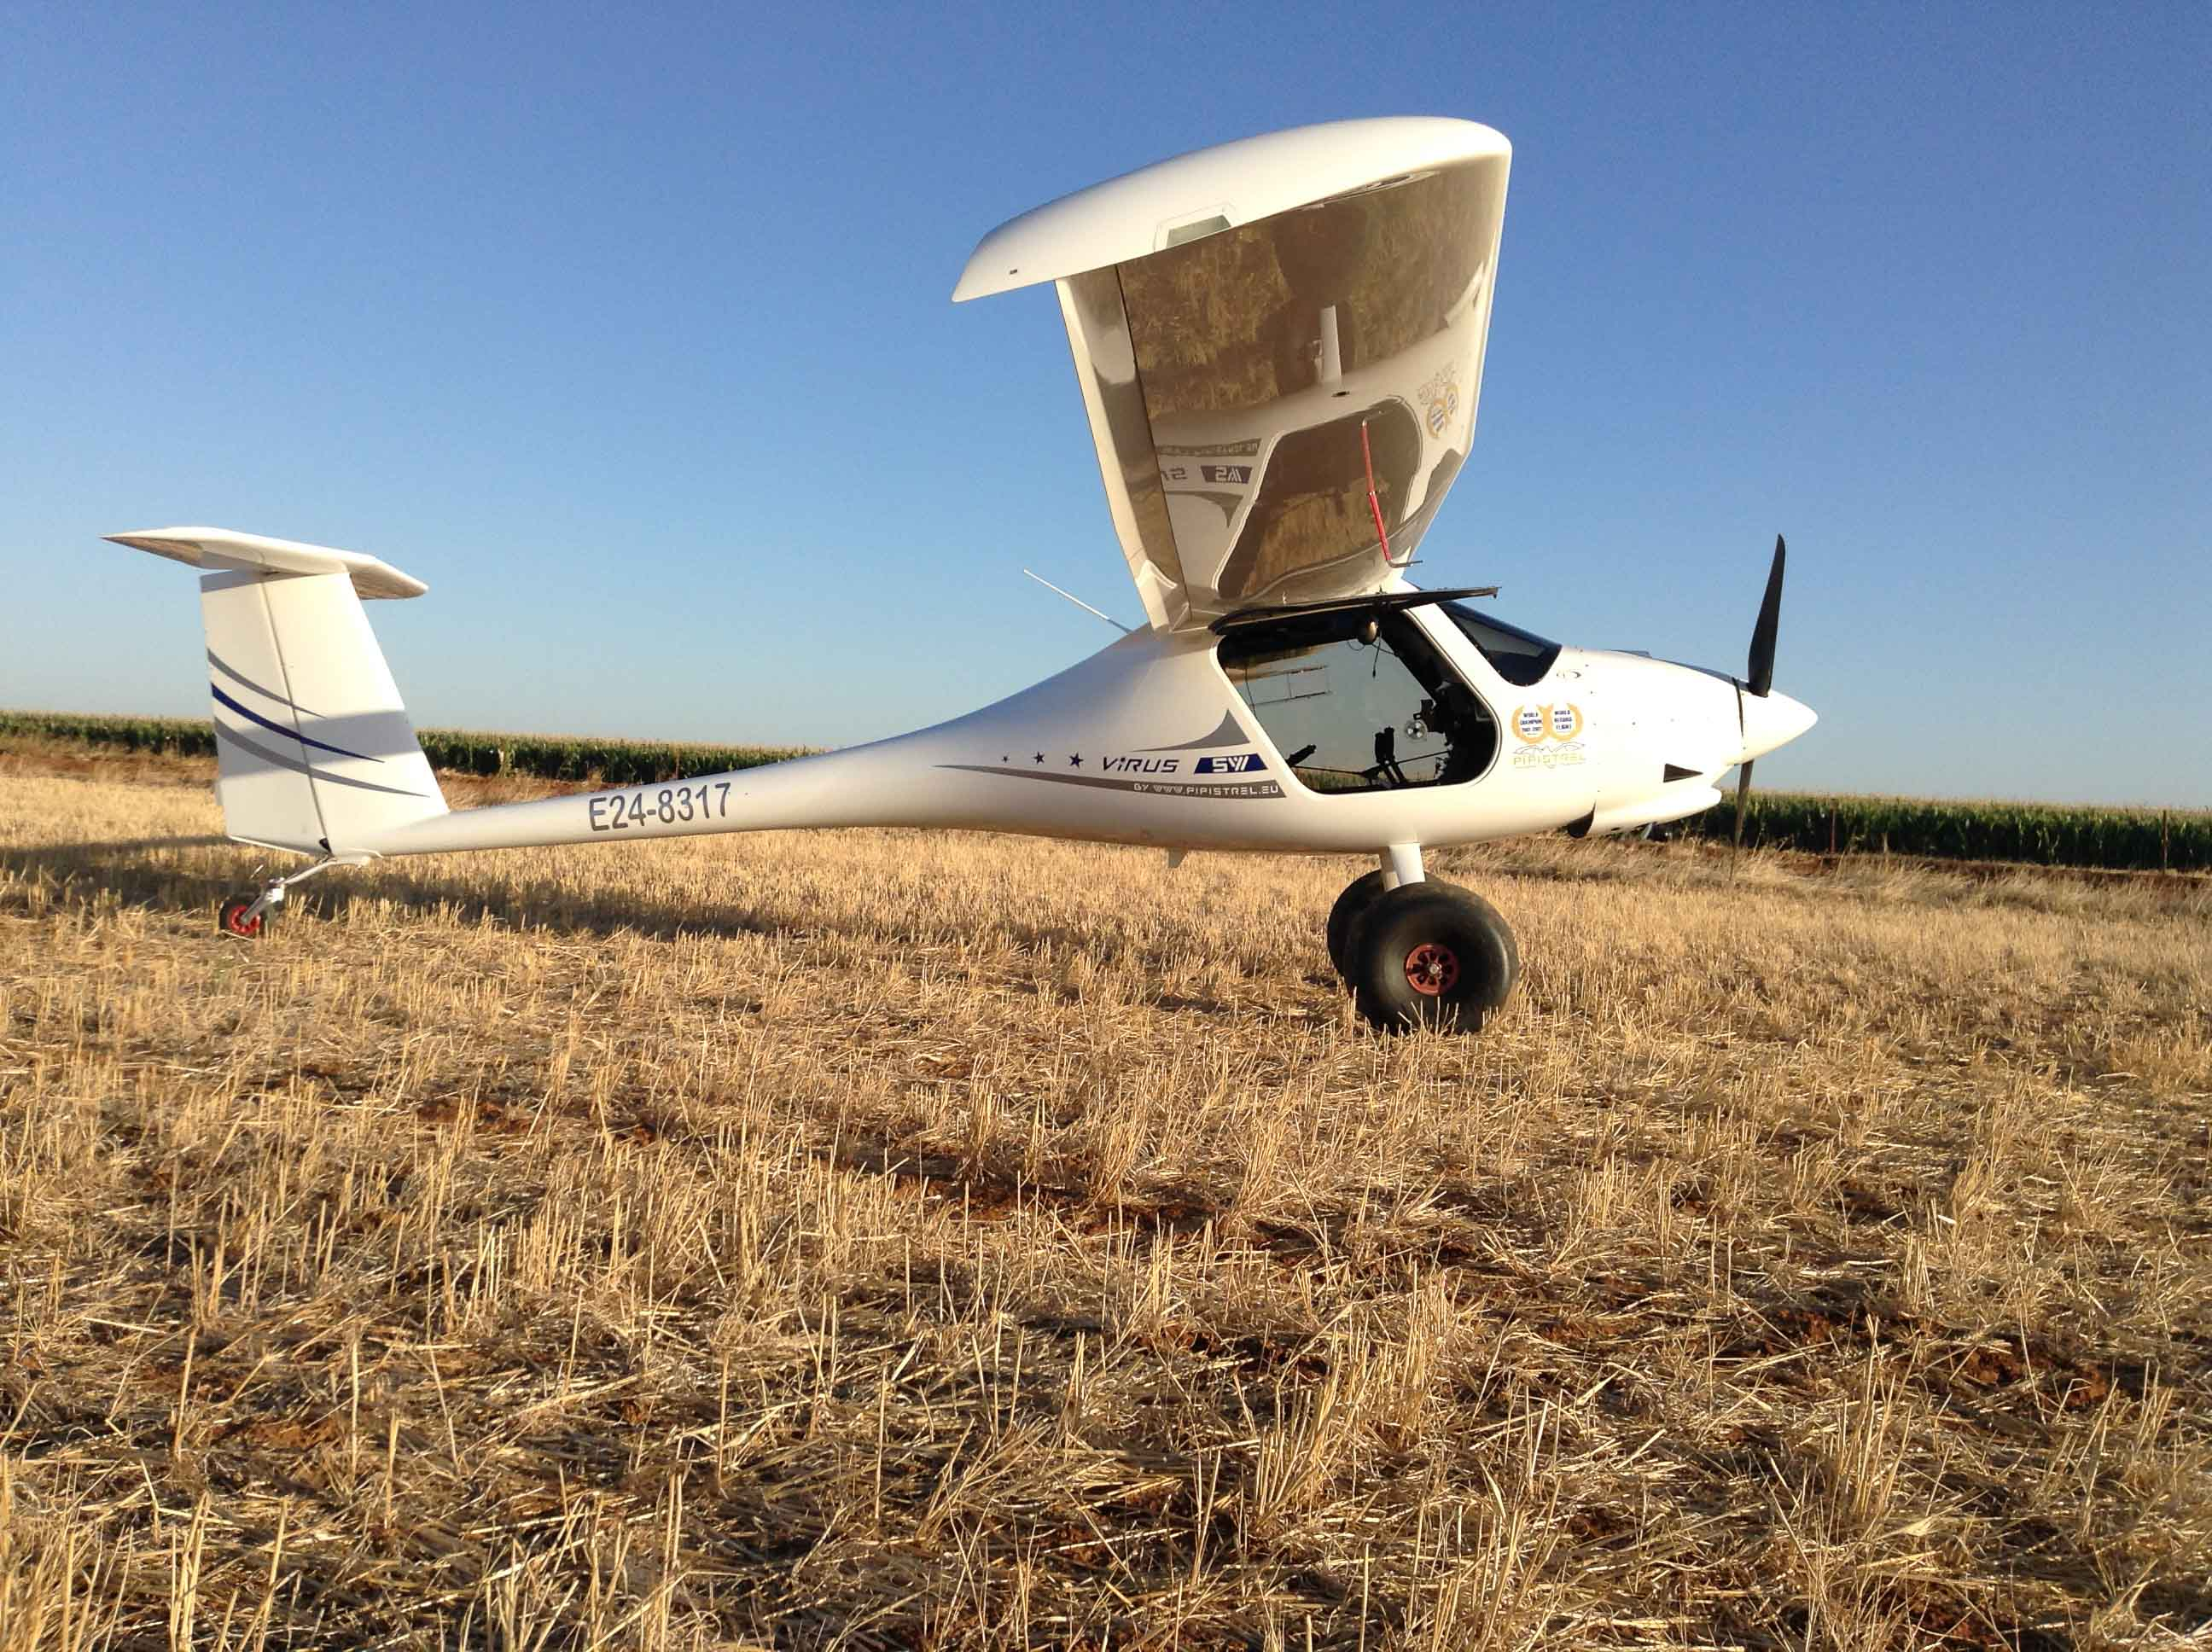 Virus SW 80/100/115/iS – Pipistrel